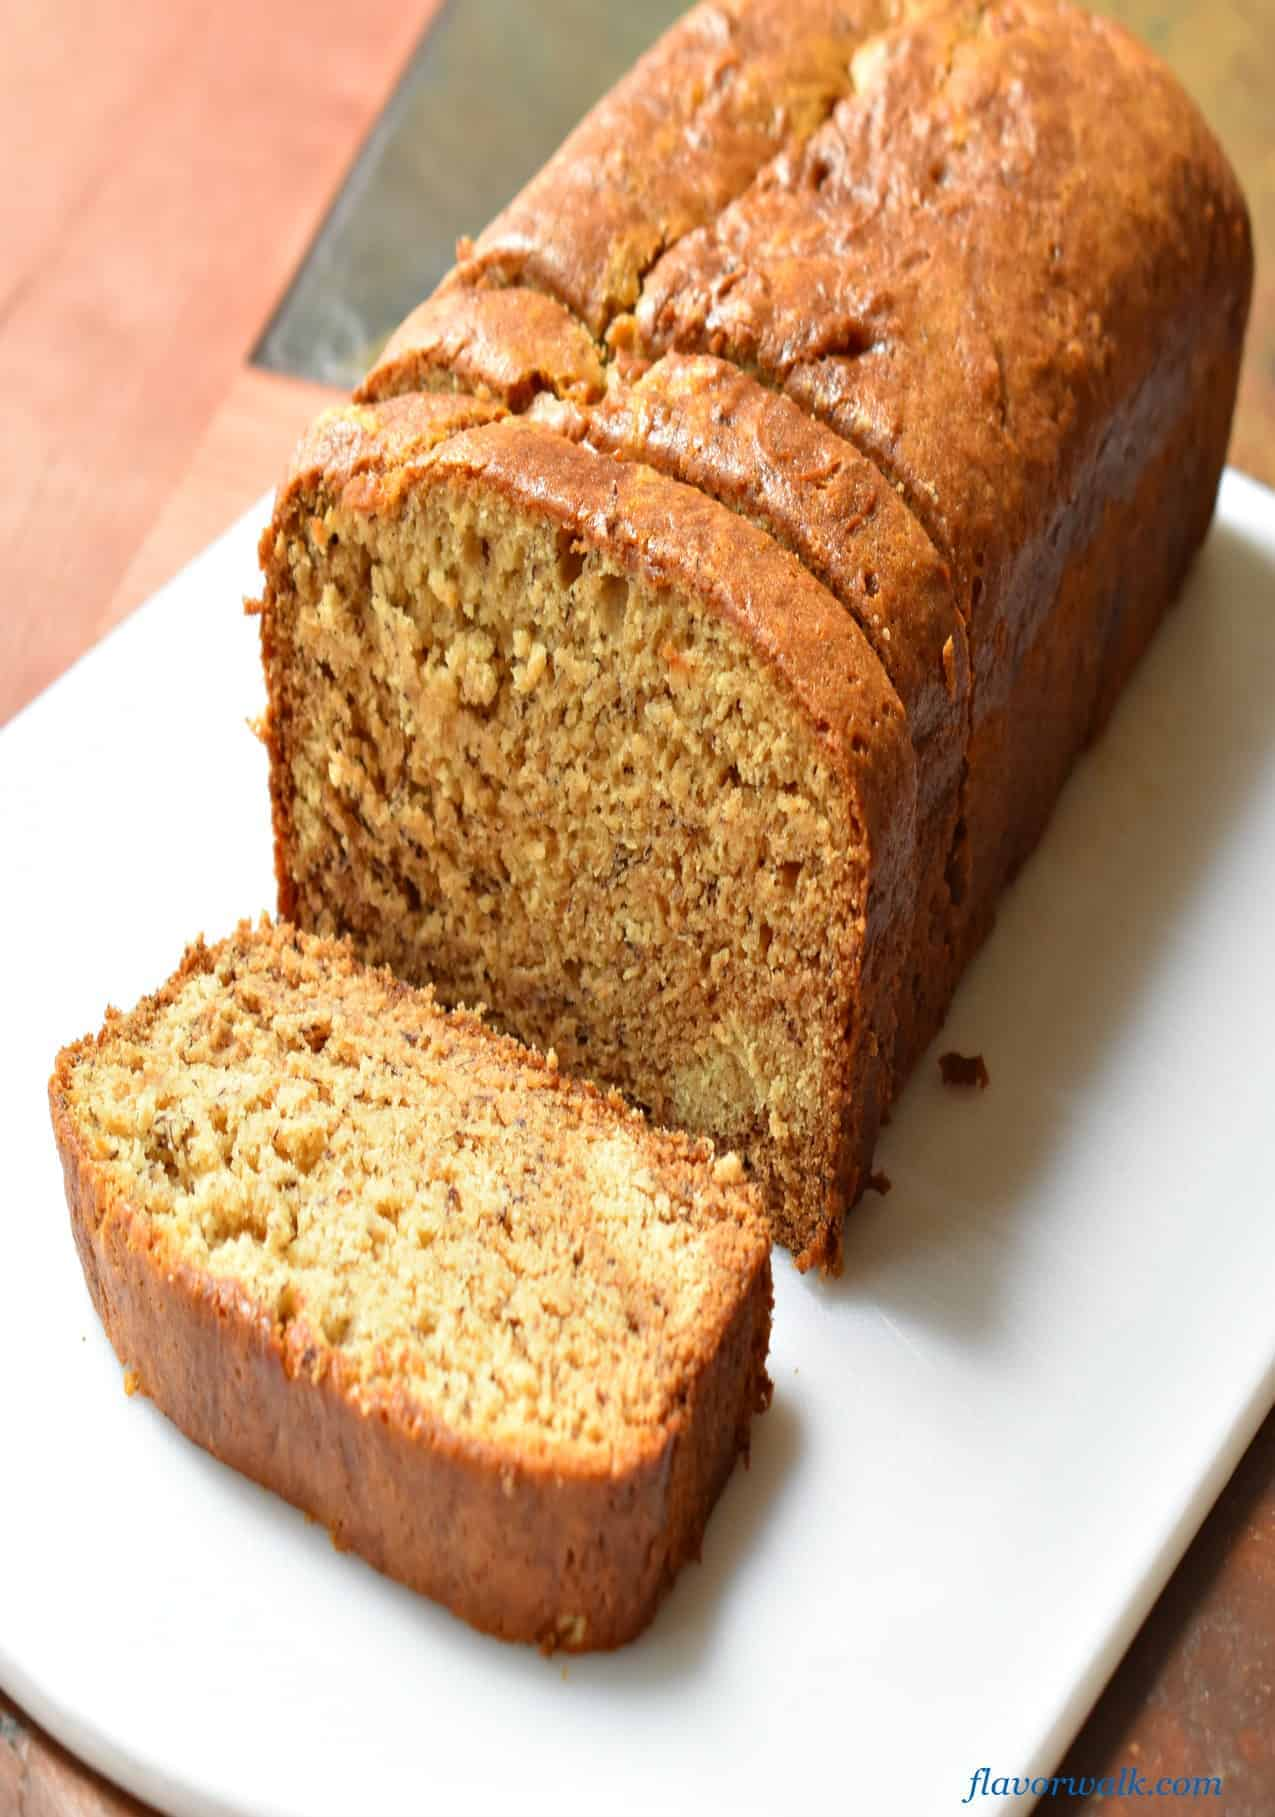 Mary's Homemade Banana Bread is tender, moist and delicious. You'd never know it's gluten free!!